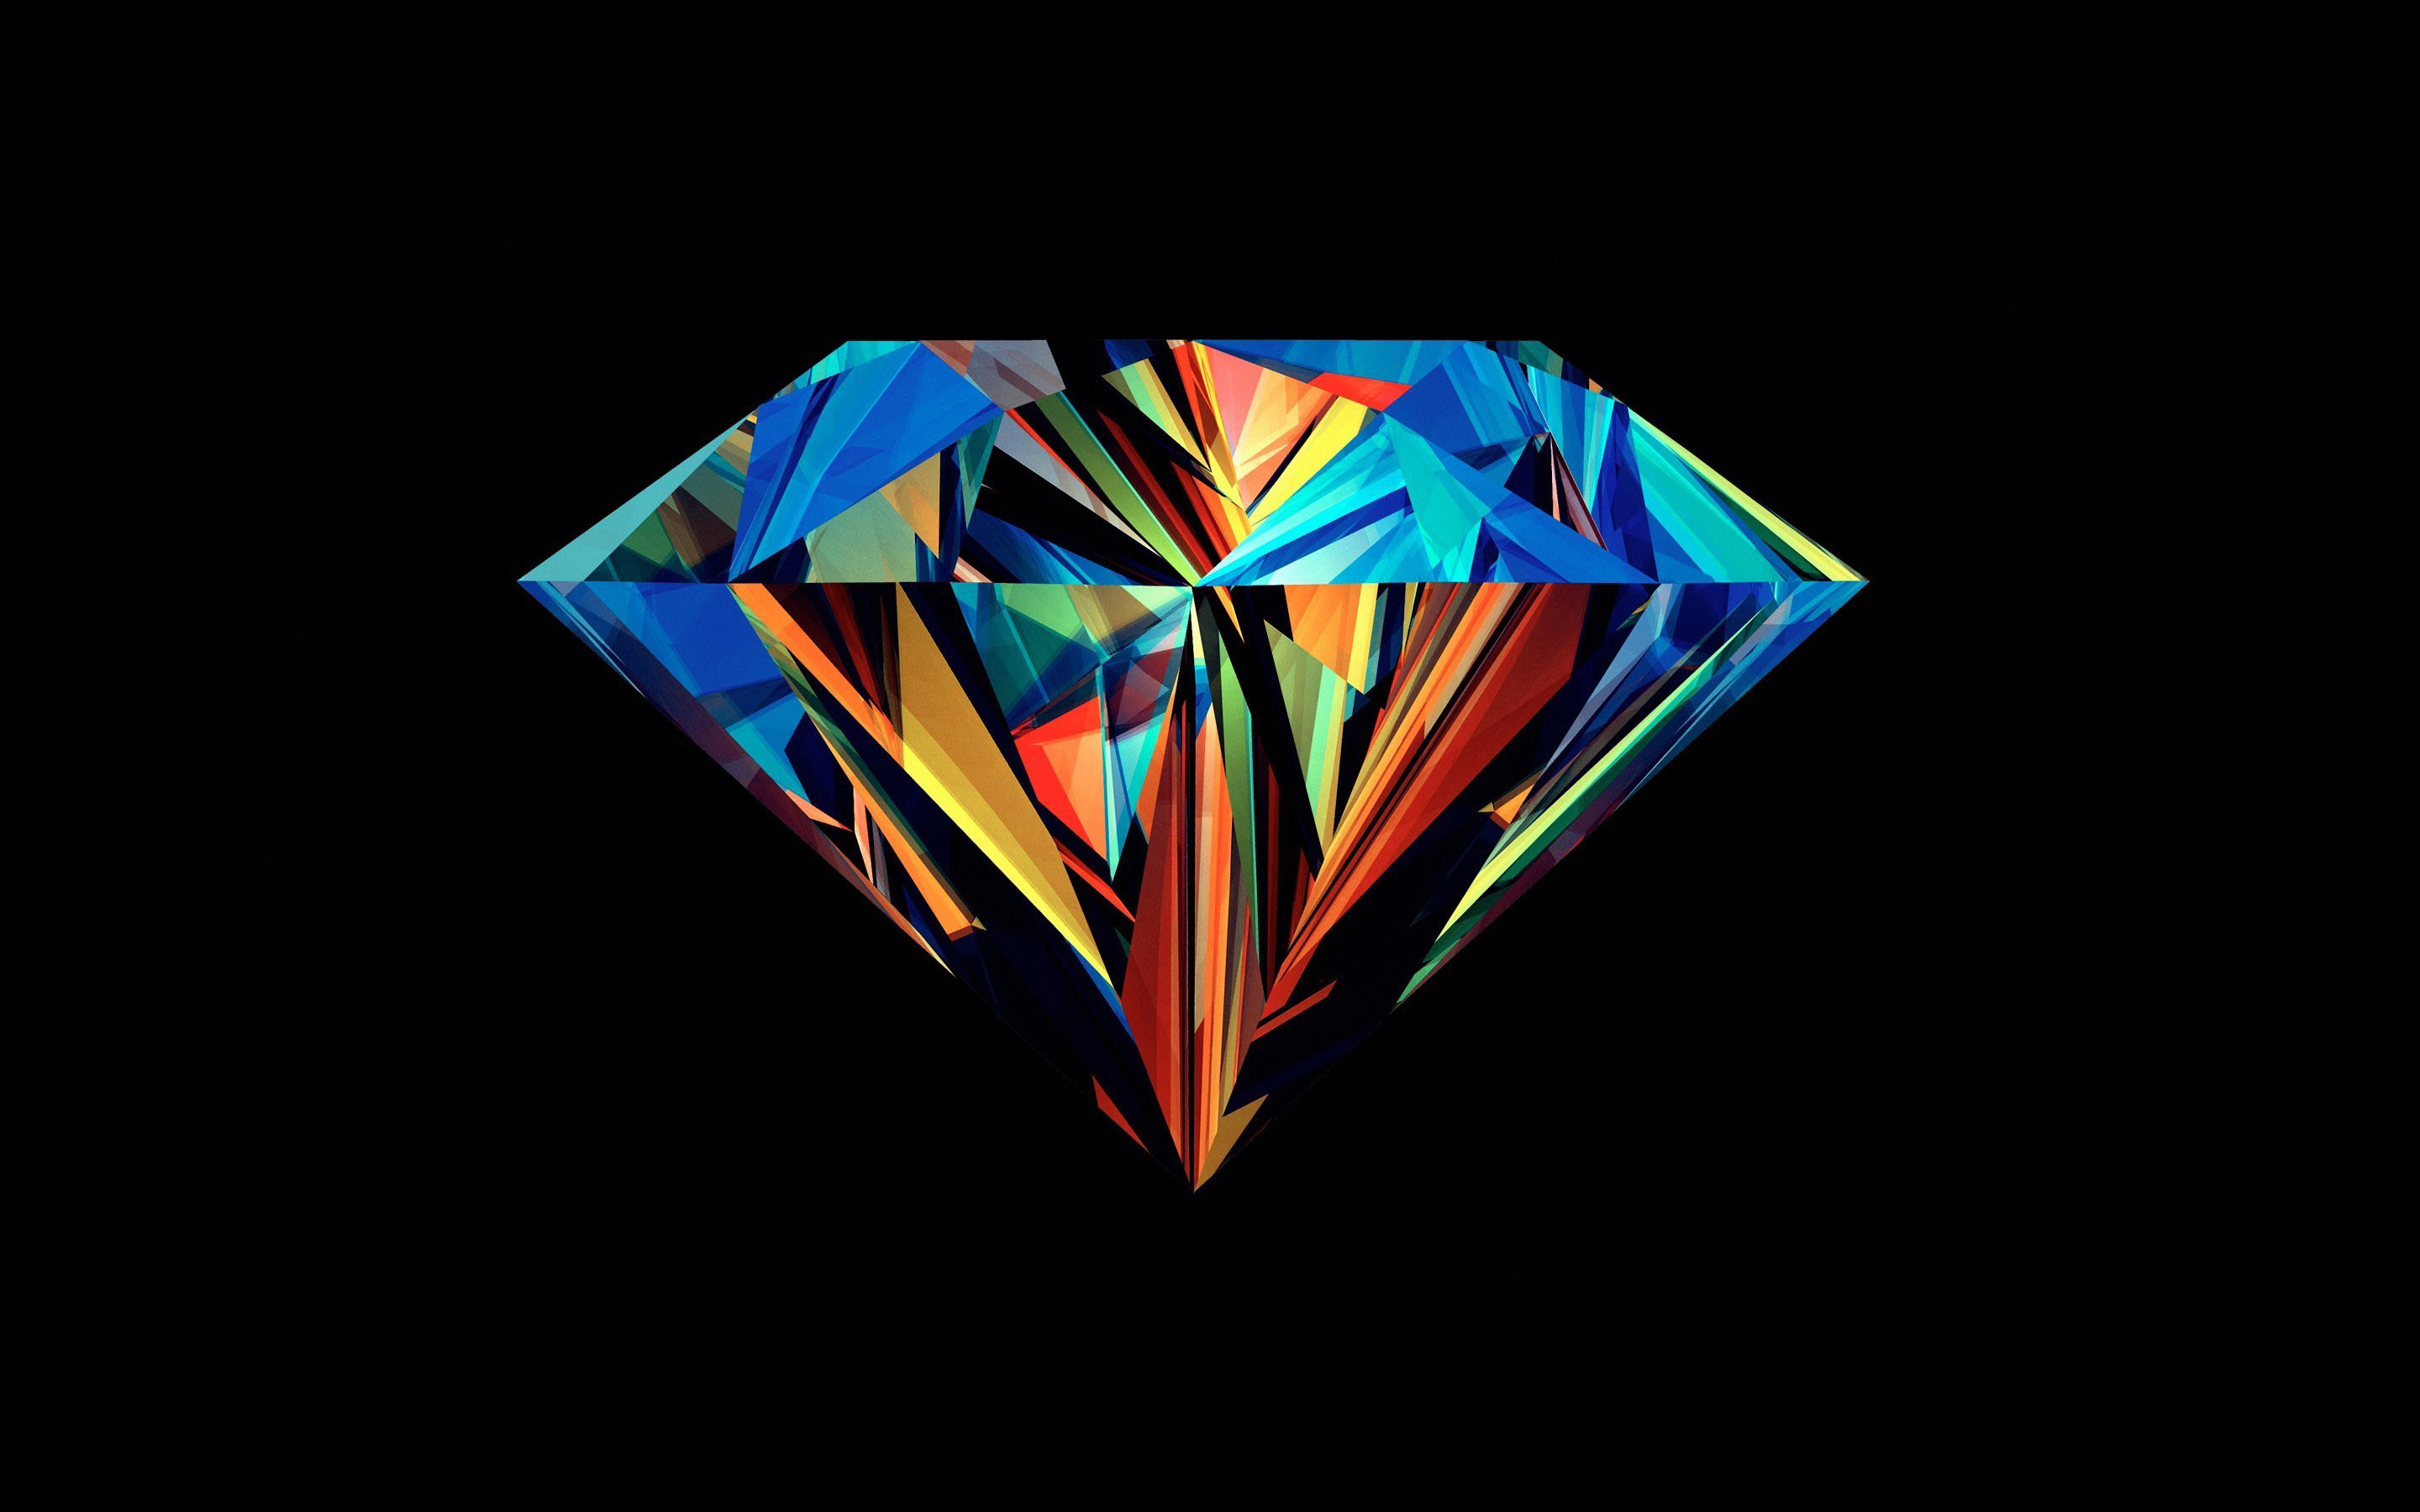 Images of Diamond | 2880x1800